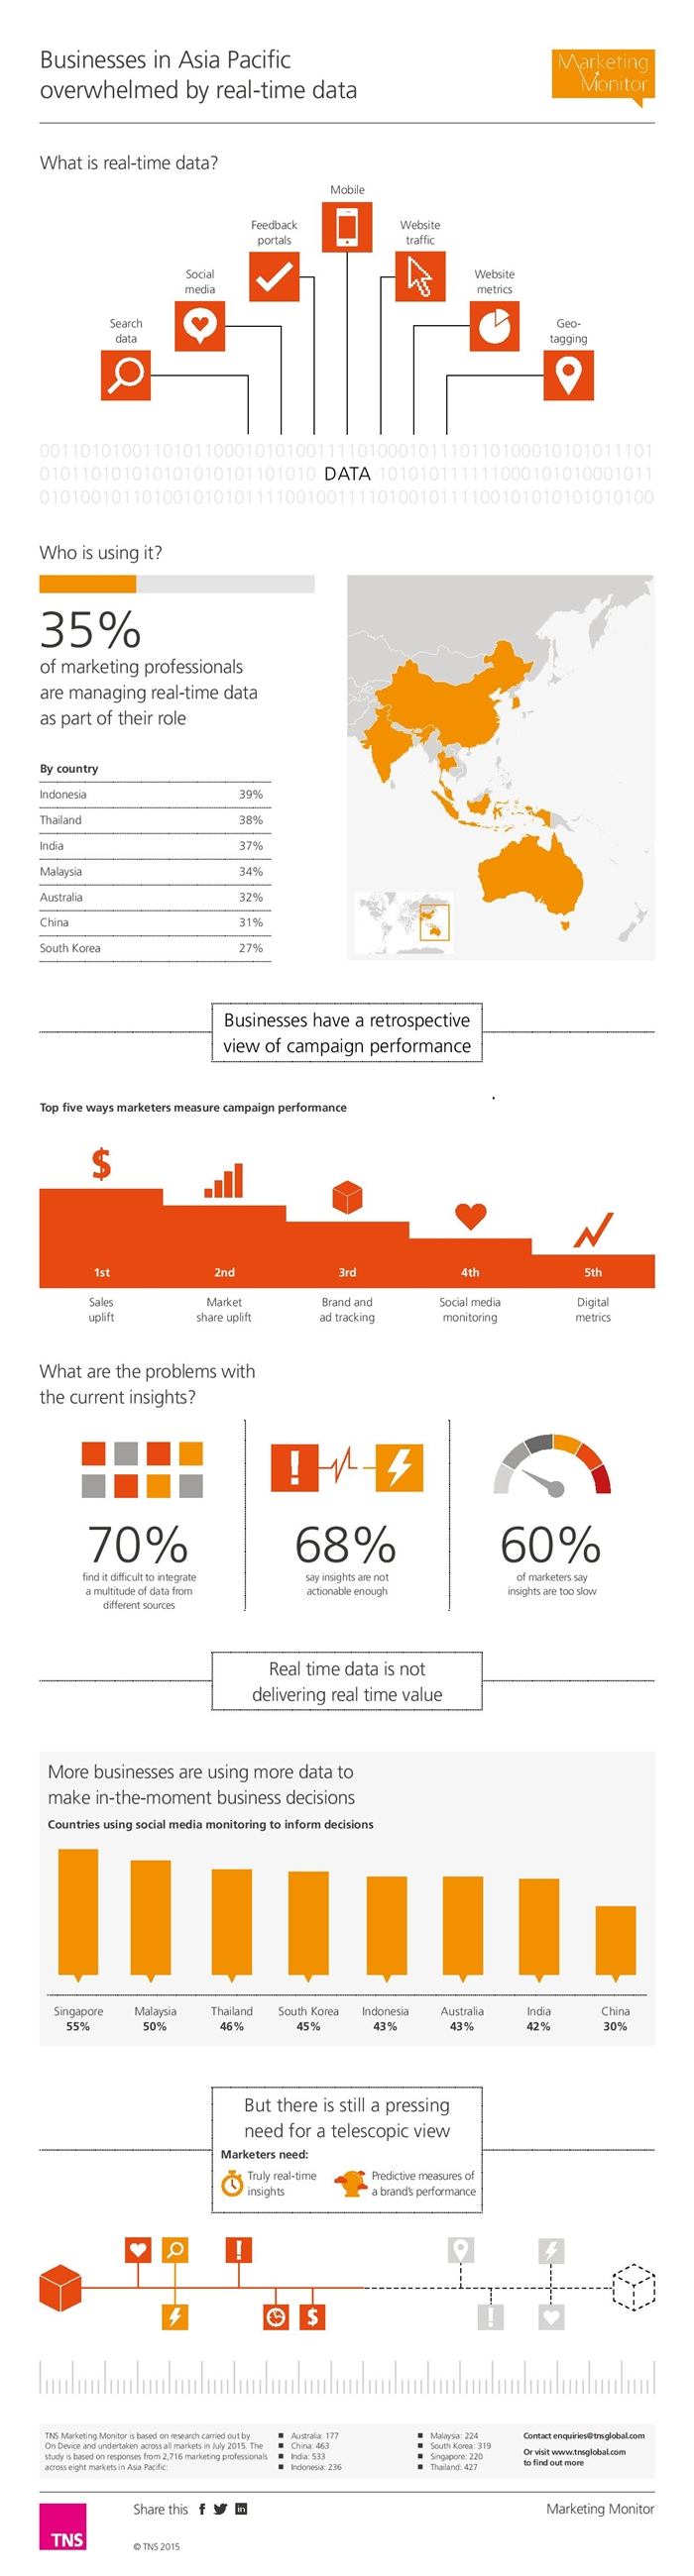 TNS_marketing_monitor_infographic-page-001-700